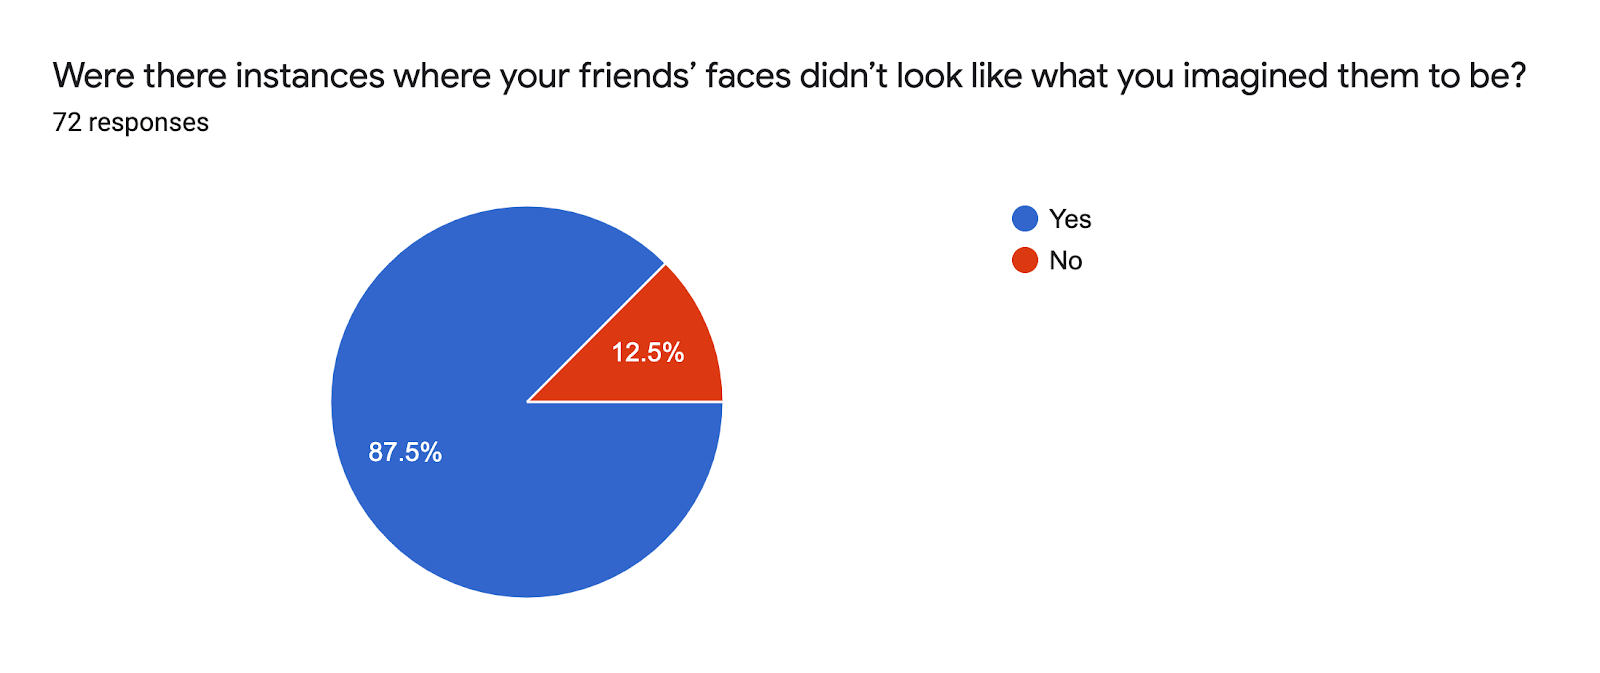 Forms response chart. Question title: Were there instances where your friends' faces didn't look like what you imagined them to be?. Number of responses: 72 responses.